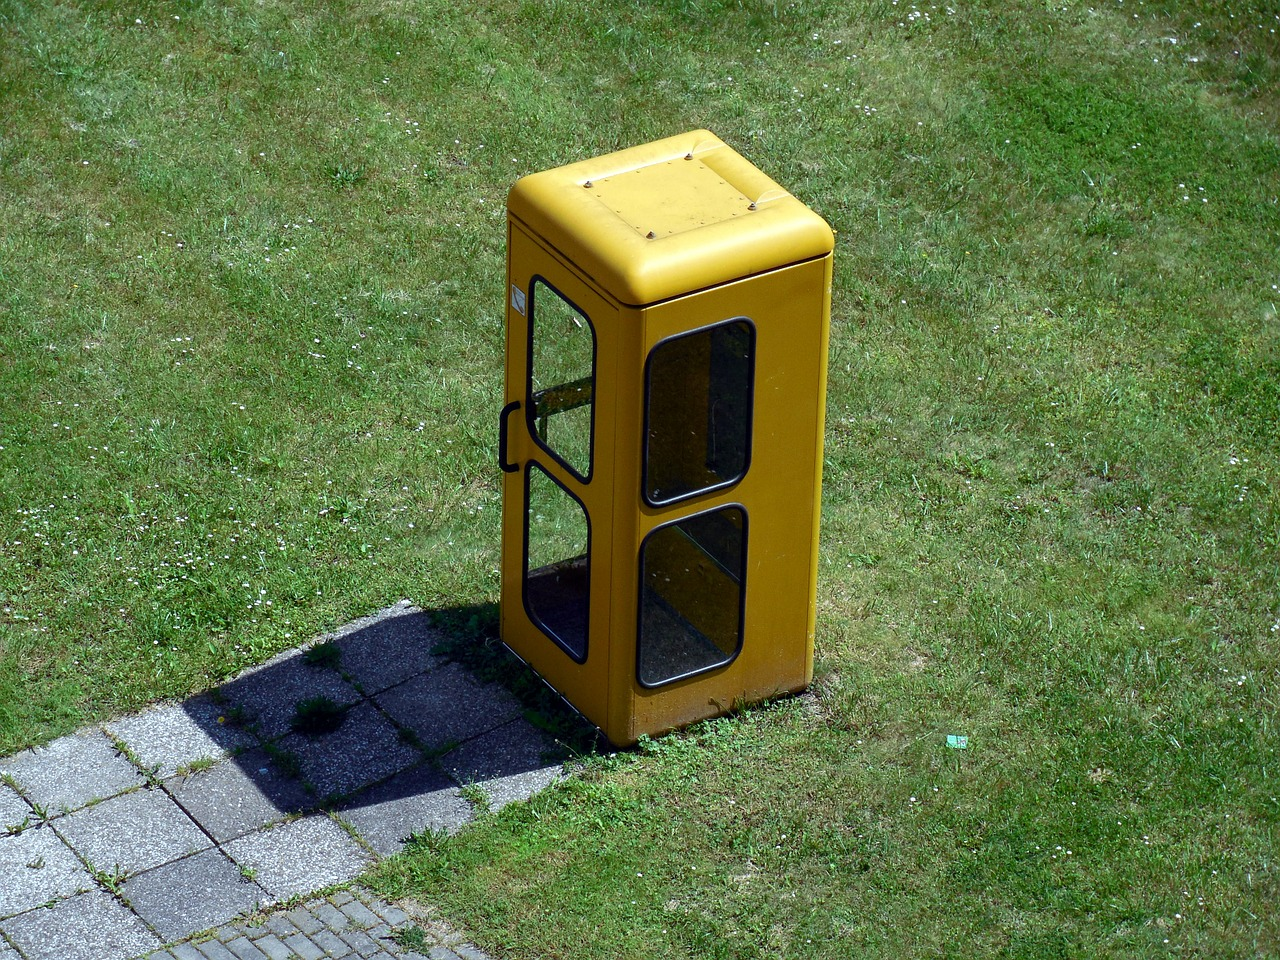 phone-booth-358349_1280